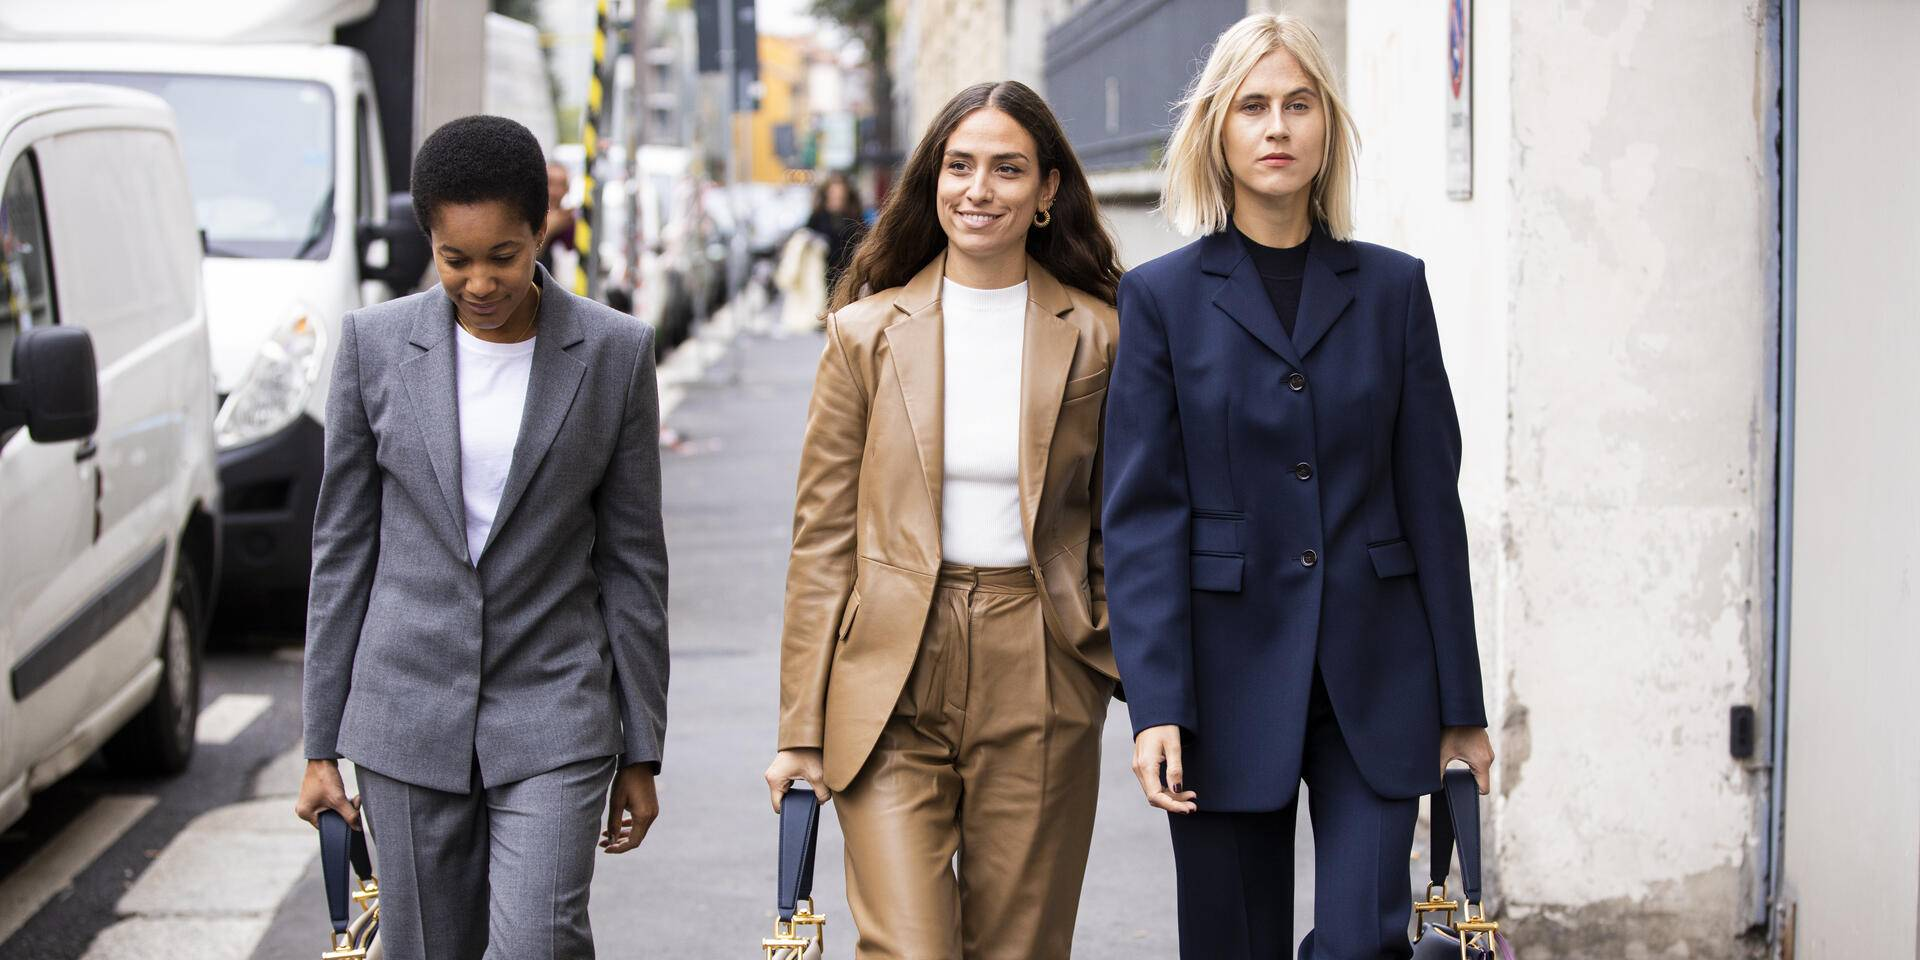 MILAN, ITALY - SEPTEMBER 22:  Tamu McPherson (L), Erika Boldrin (C) and Linda Tol (R), wearing suits and Hugo Boss bag, are seen outside the Hugo Boss show during Milan Fashion Week Spring/Summer 2020 on September 22, 2019 in Milan, Italy. (Photo by Claudio Lavenia/Getty Images)